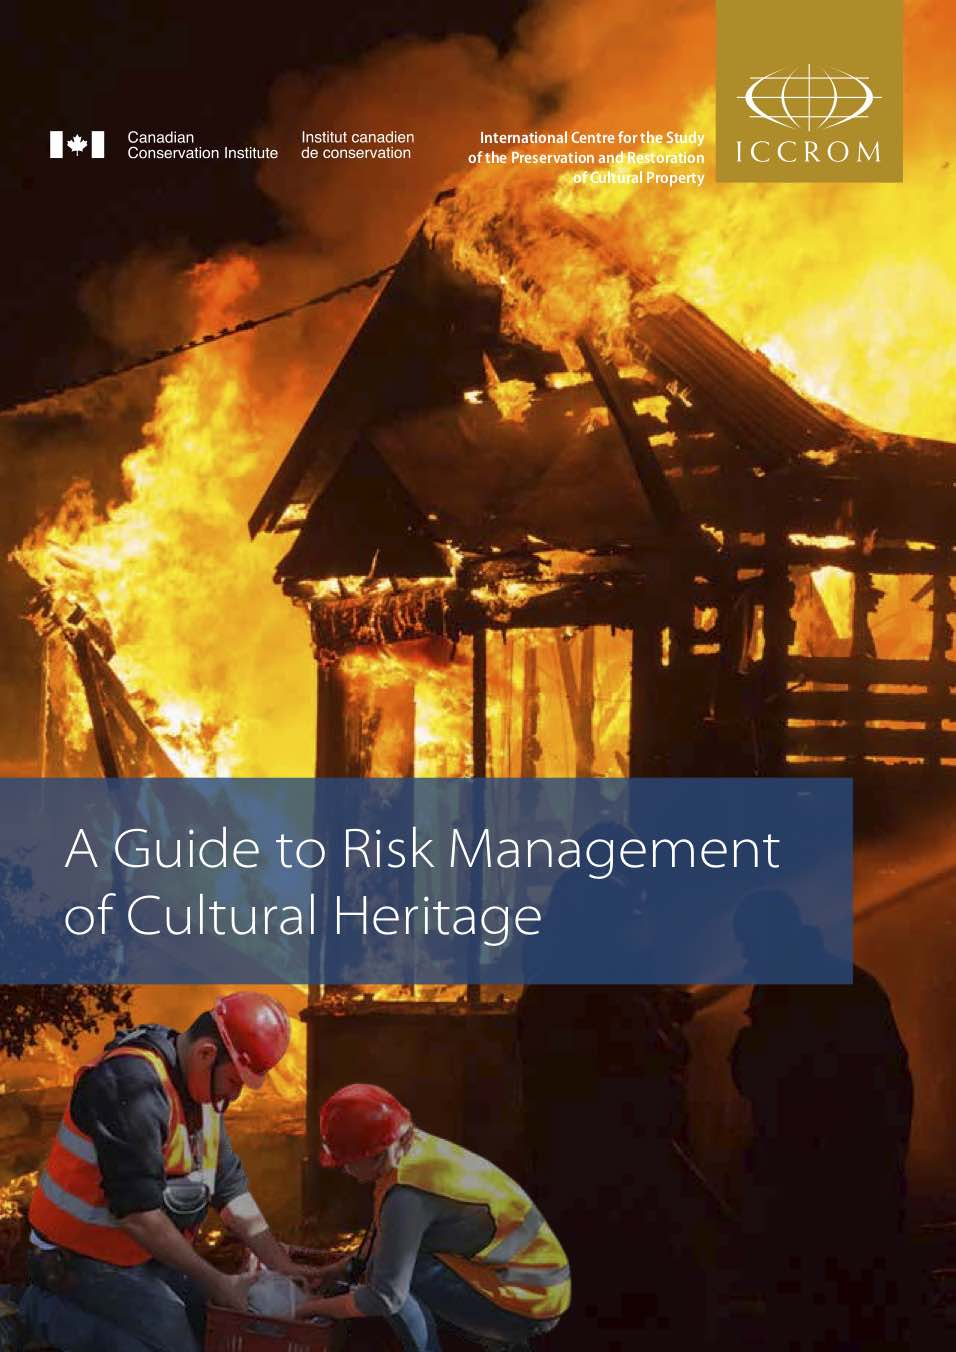 Cover-ICCROM-A guide to risk management for Cultural Heritage-Eng